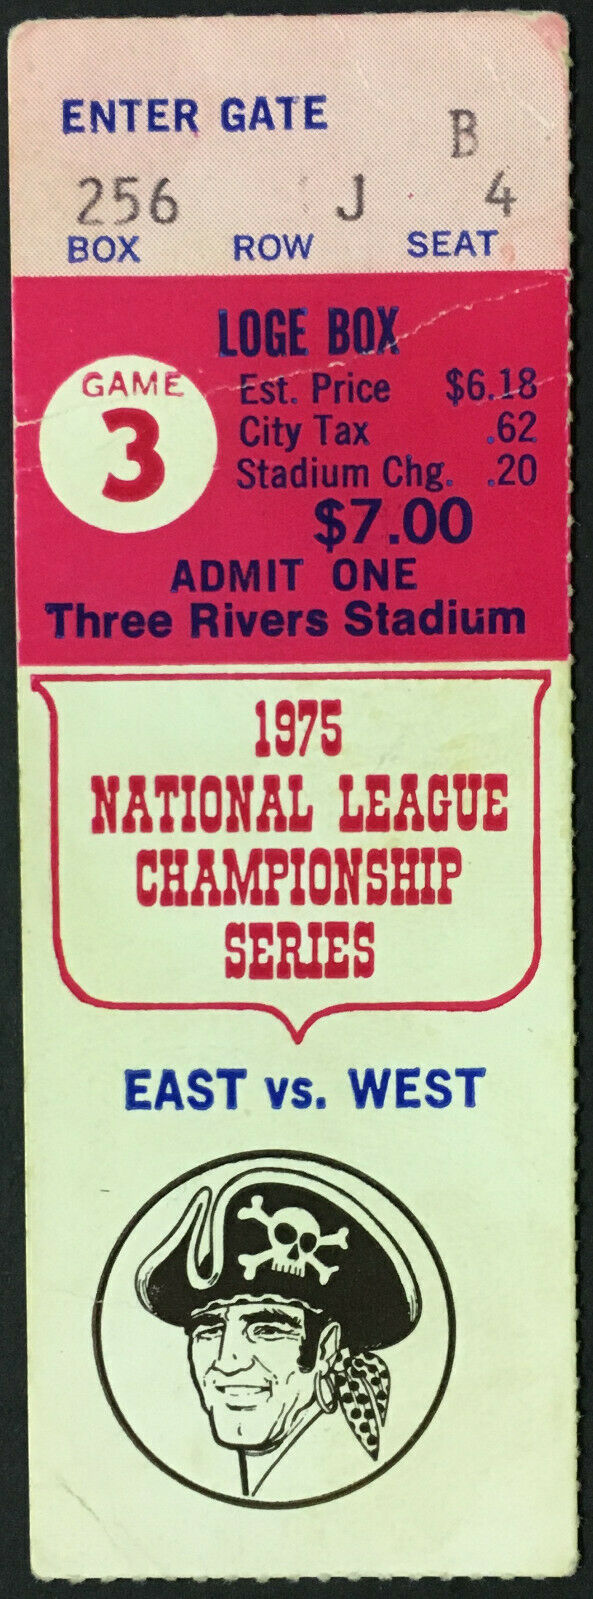 1975 NLCS MLB Game 3 Ticket Three Rivers Stadium Pirates v Reds Pete Rose HR